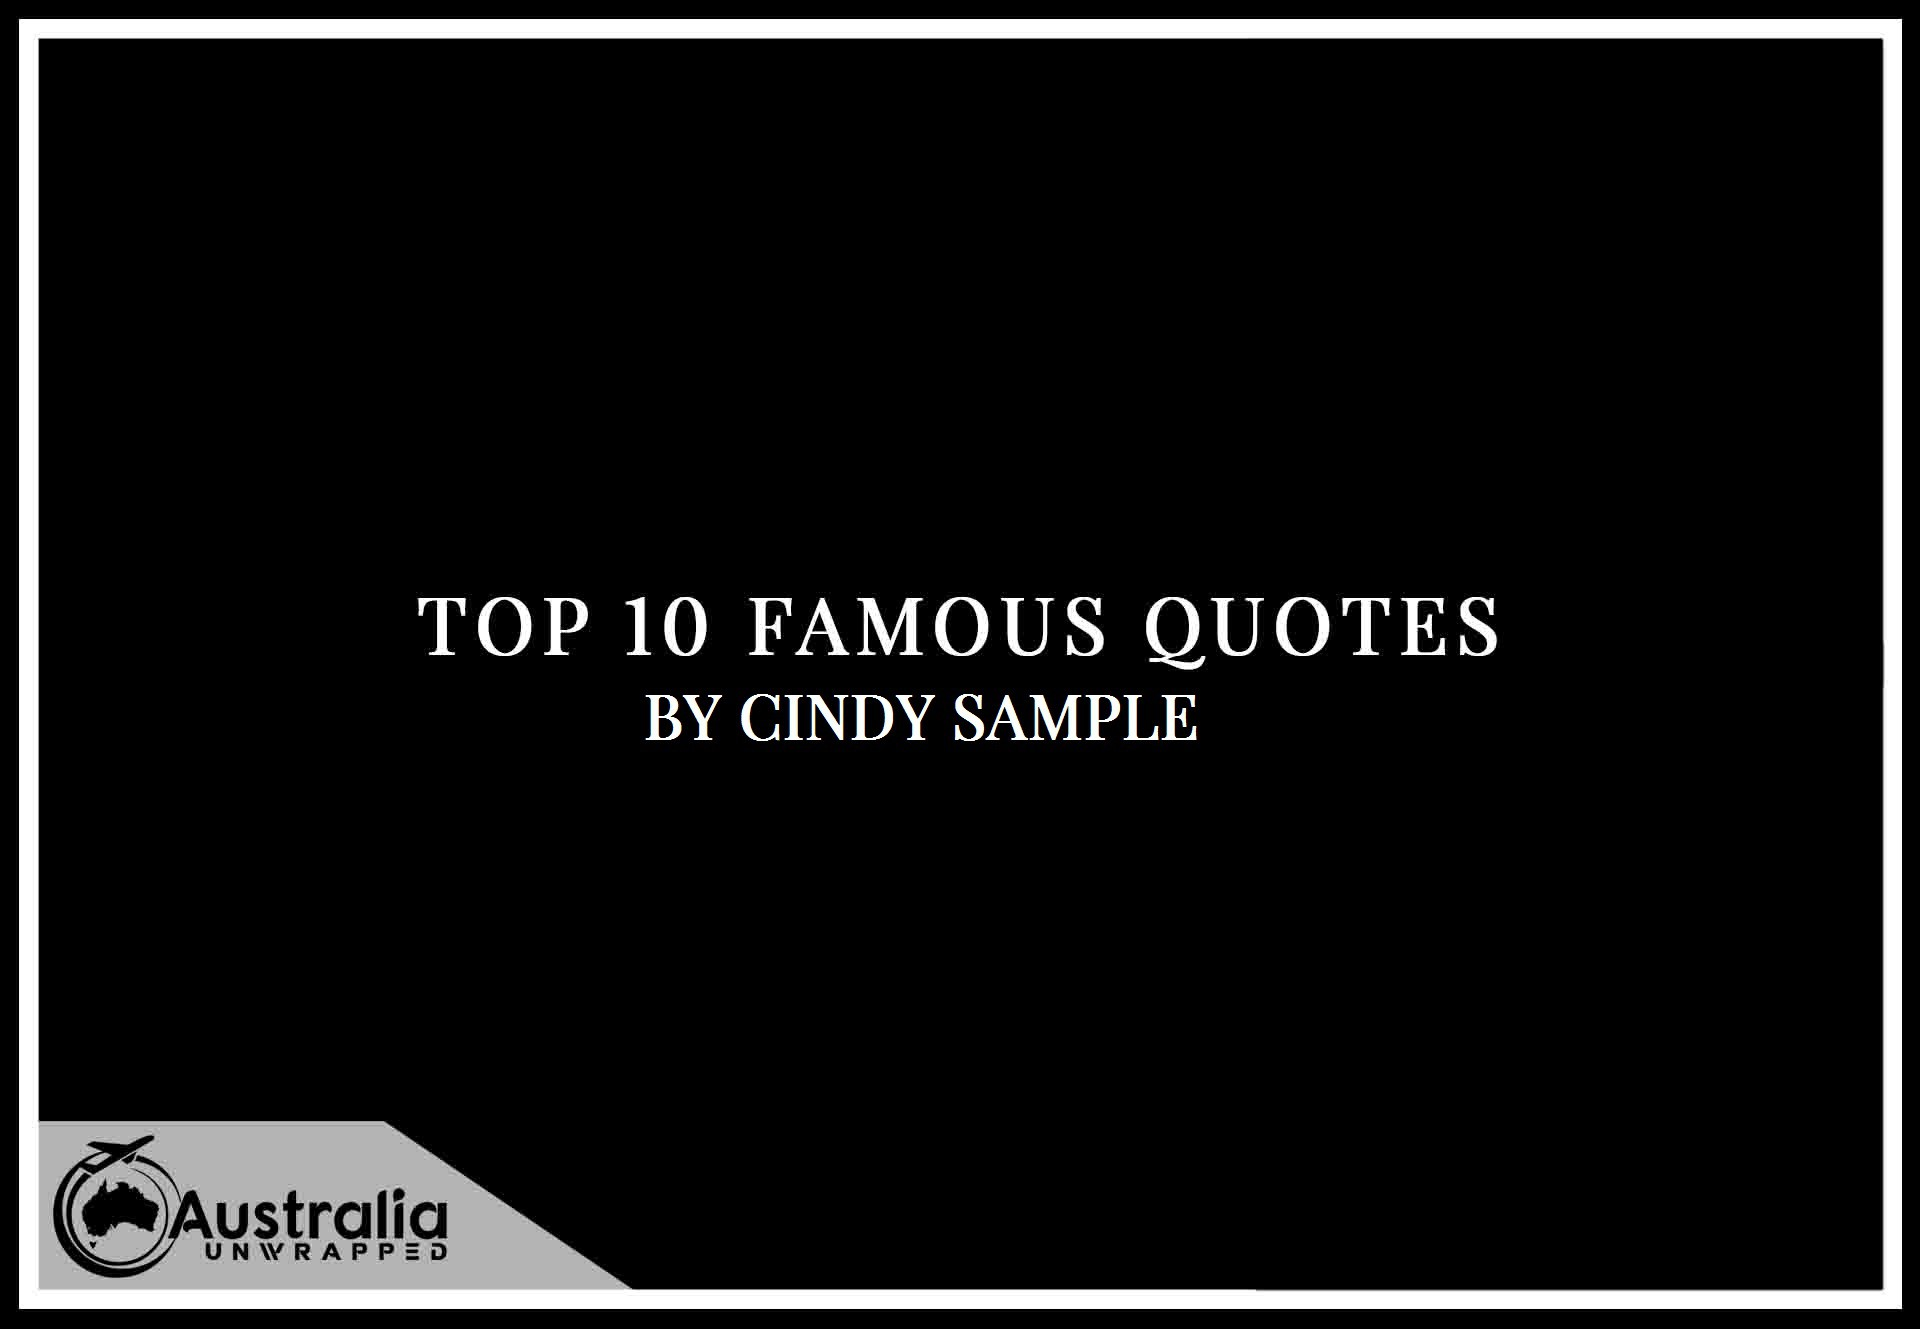 Cindy Sample's Top 10 Popular and Famous Quotes